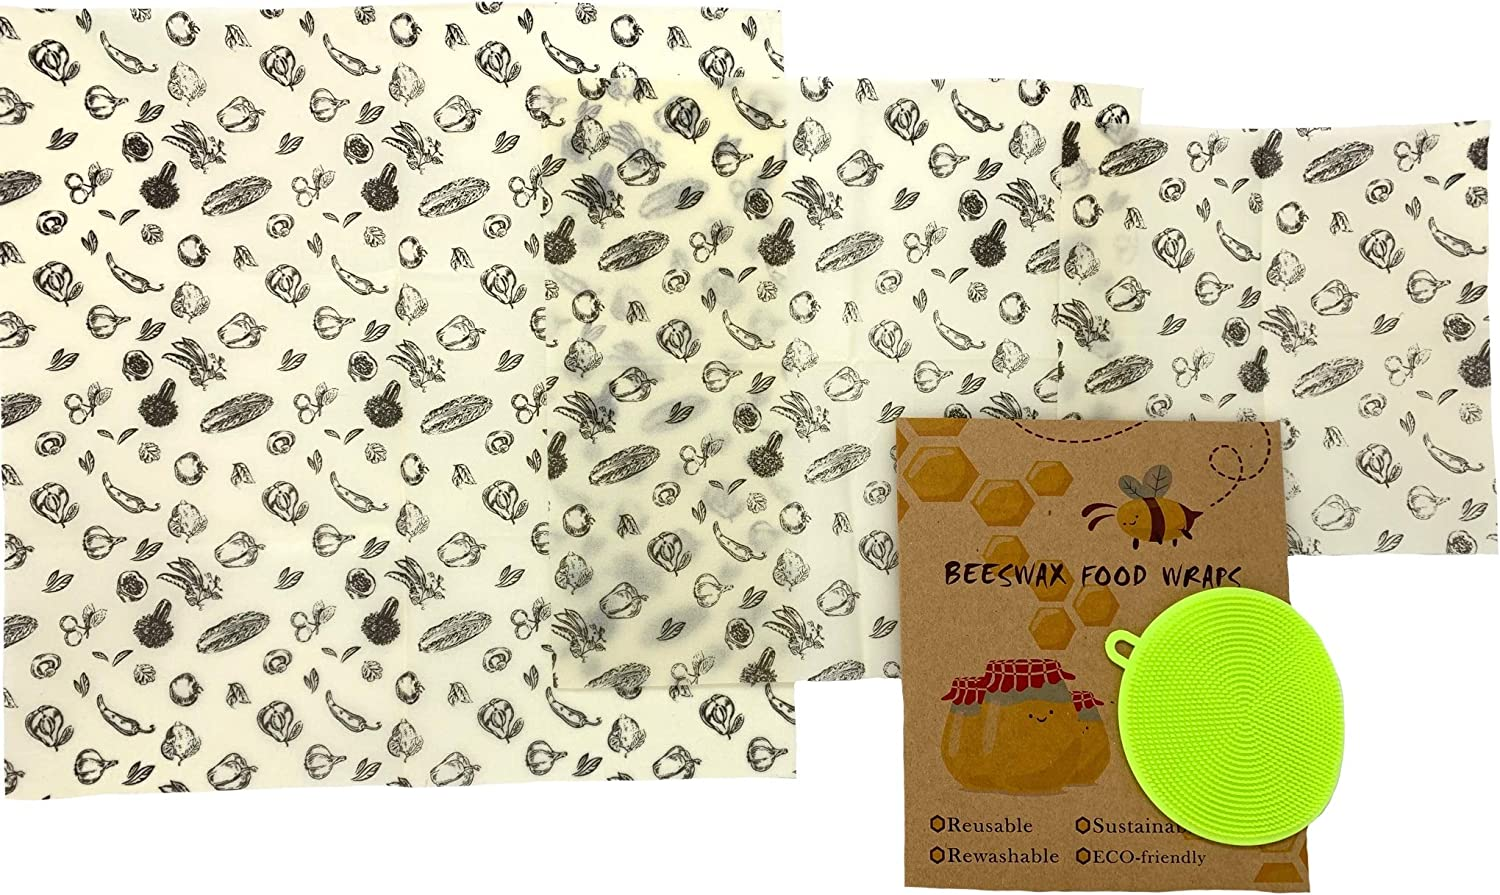 Beeswax Reusable Food Wraps w/Free Produce Scrubber - 3 Sizes - Nature's Solution to Plastic Food Wrap Alternatives - Fresher, Longer, Portable, Washable by Rich Rose Supply Co. (Produce Variety)